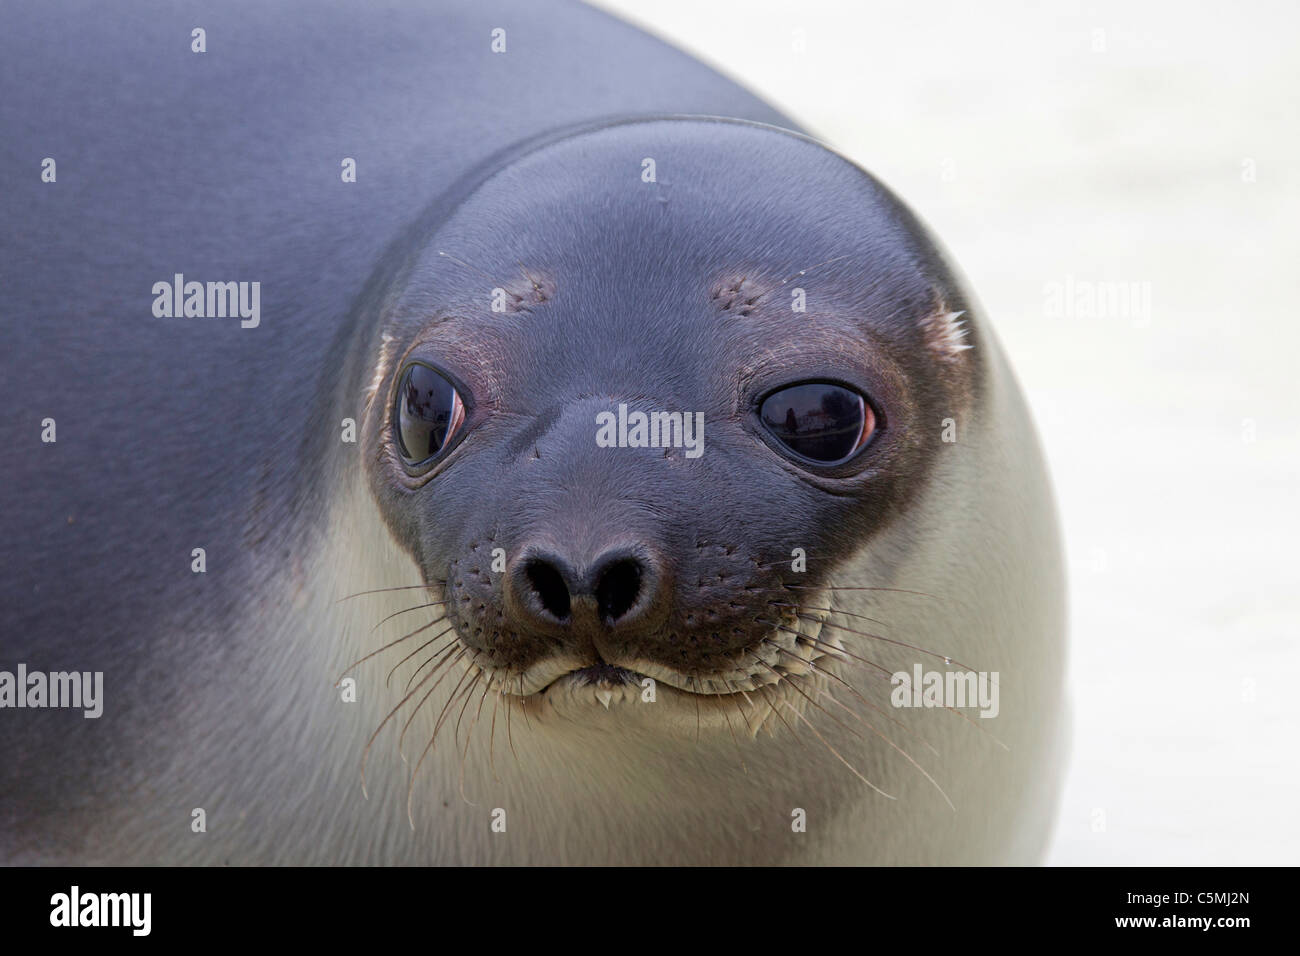 Hooded Seal (Cystophora cristata), portrait of a young female. - Stock Image